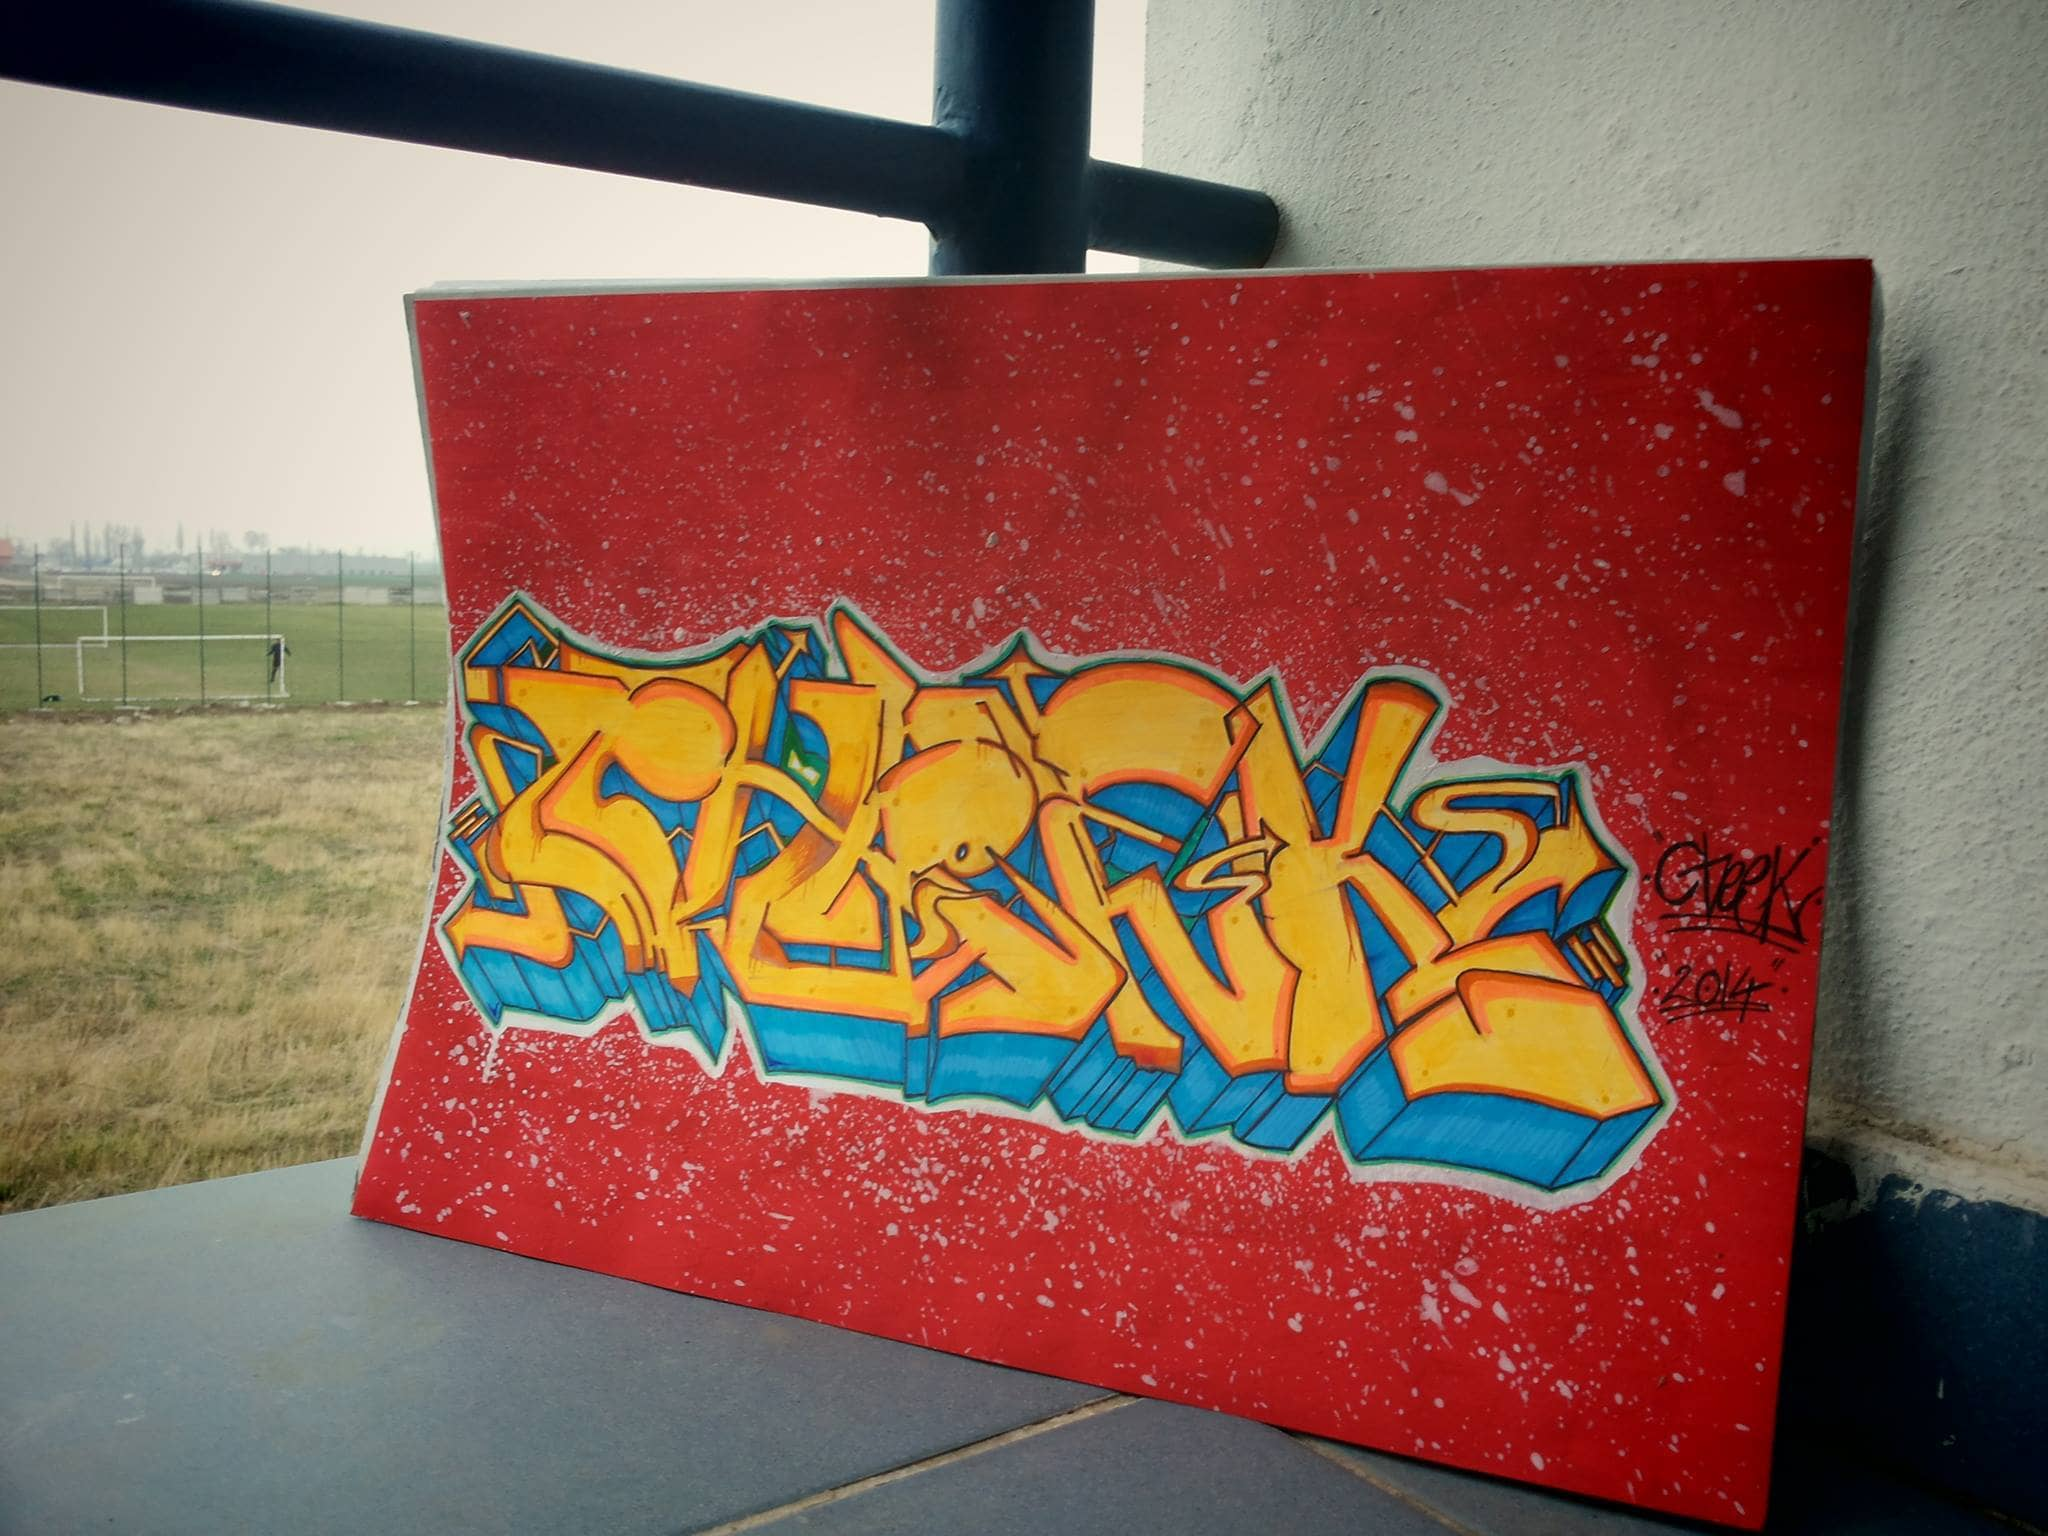 I will design your name in my graffiti style